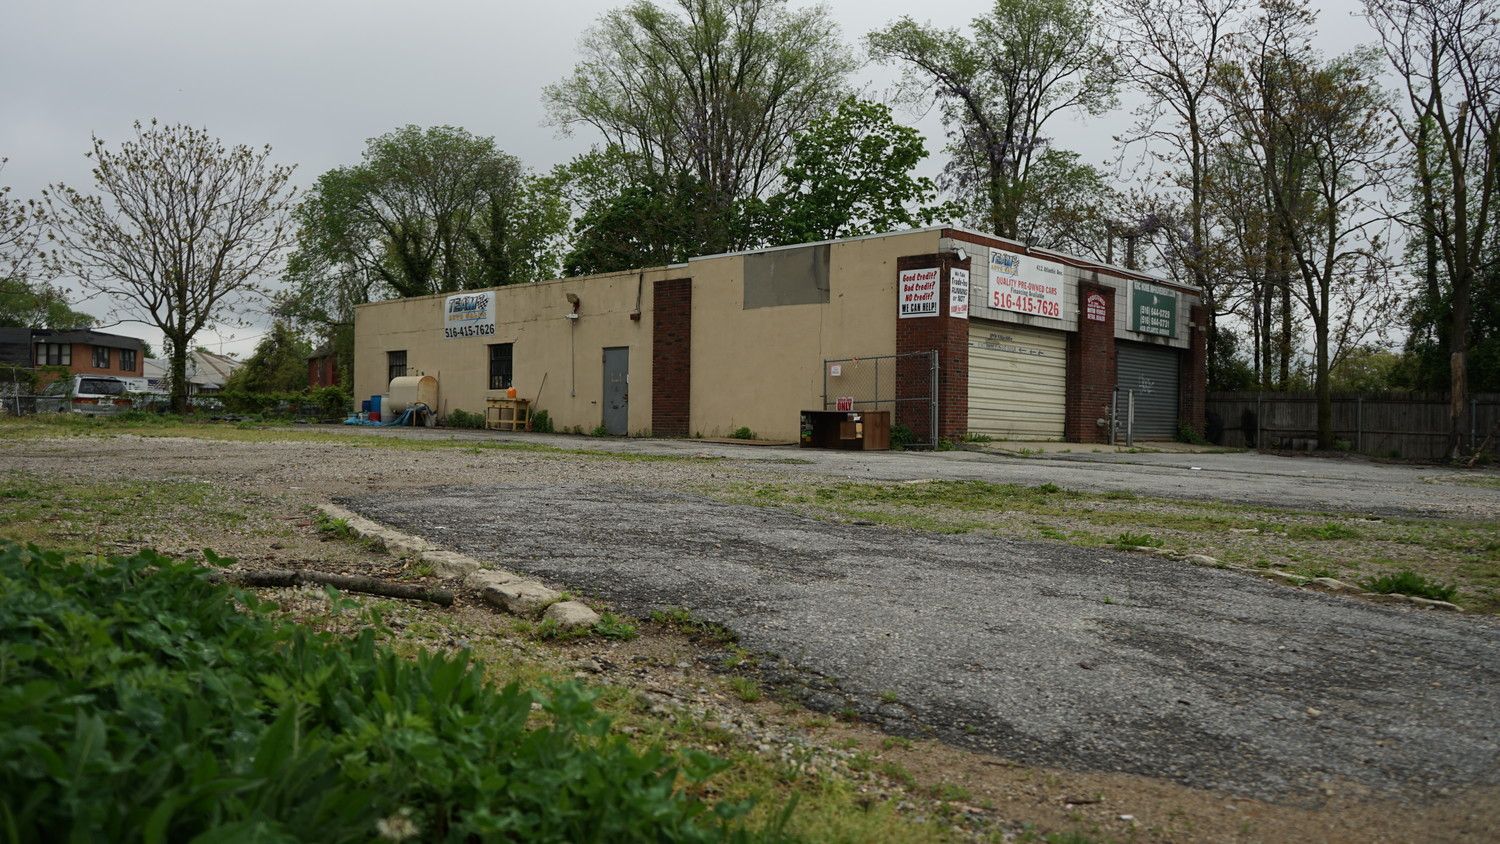 A local architect submitted a site assessment that revealed soil contamination on this Atlantic Avenue used car lot at a May 9 Board of Zoning Appeals hearing, as the owner sought to obtain town permission for his plan to improve the property.